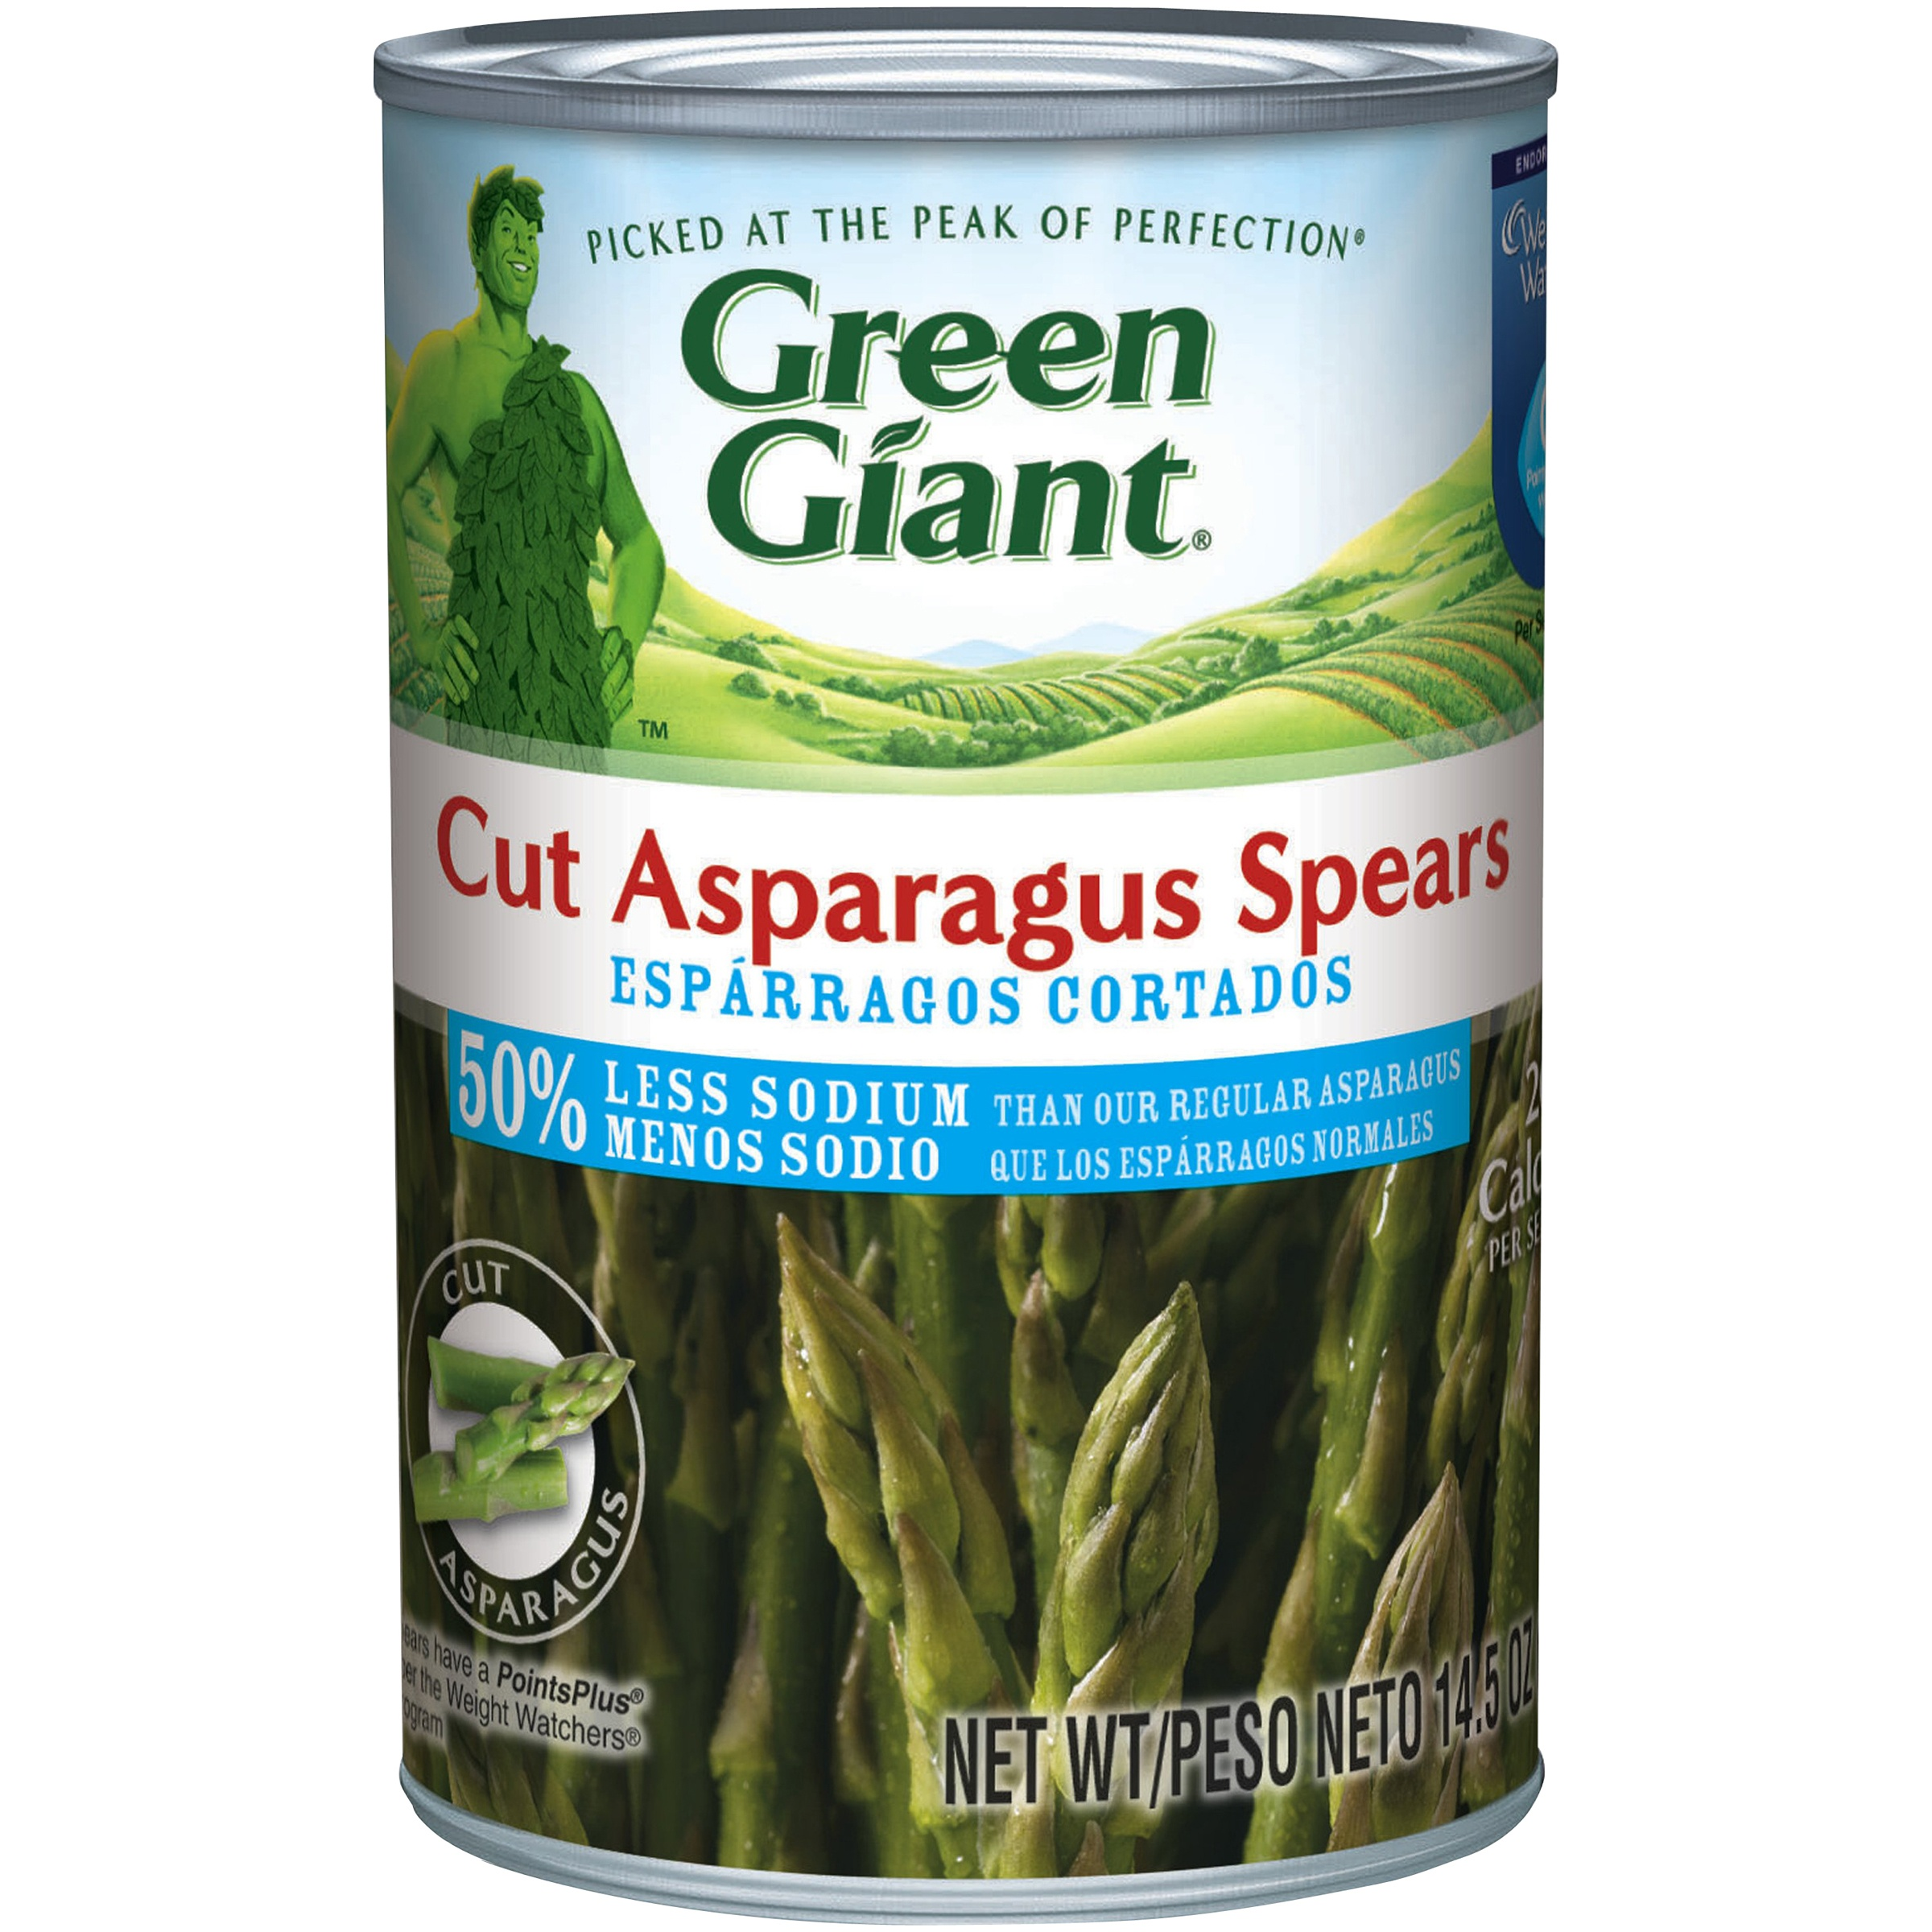 Green Giant Cut Asparagus Spears, 14.5 OZ